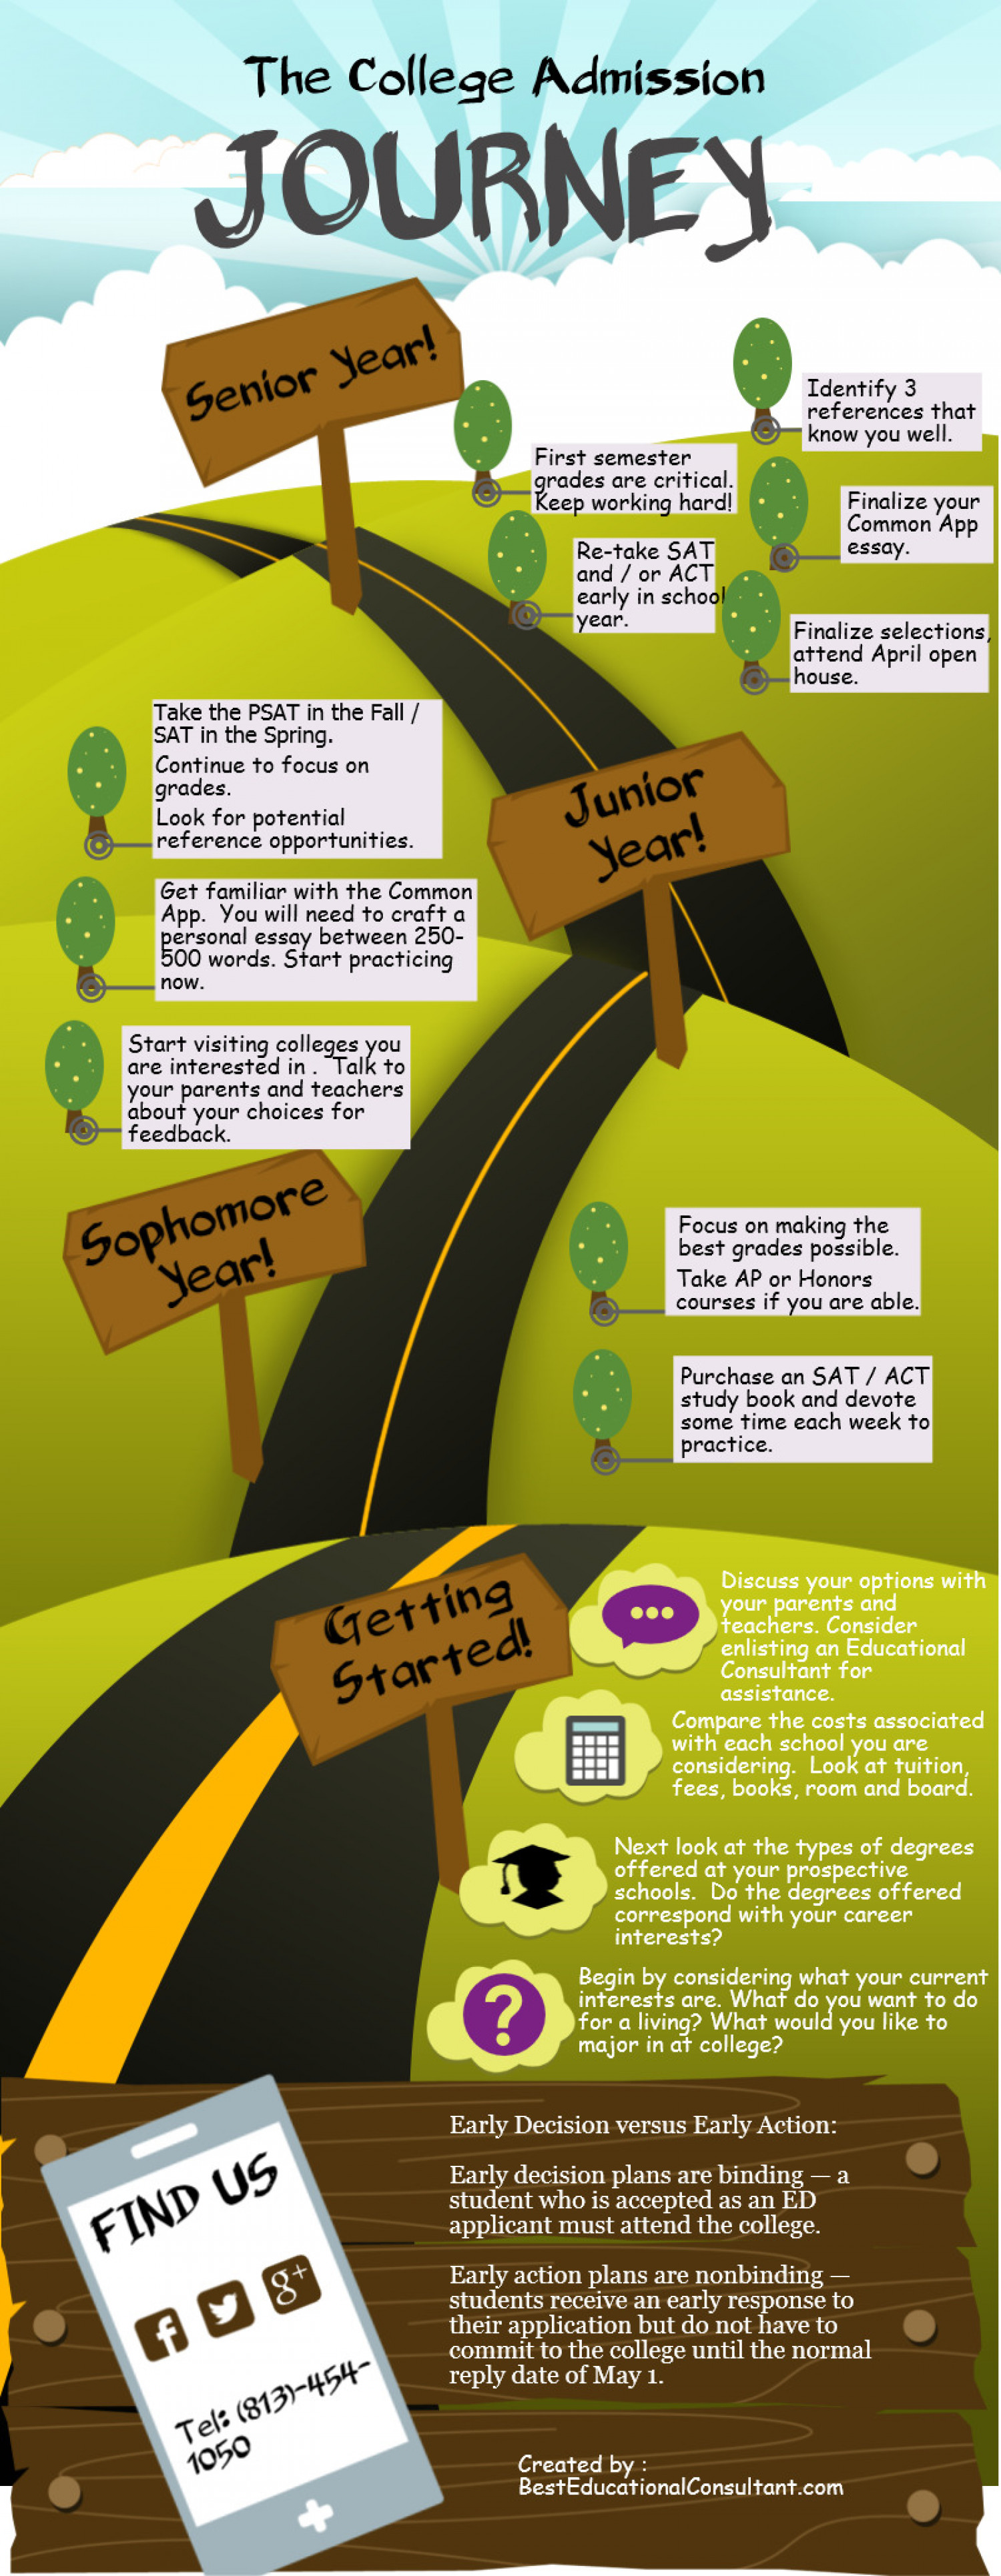 College Admissions Journey Infographic